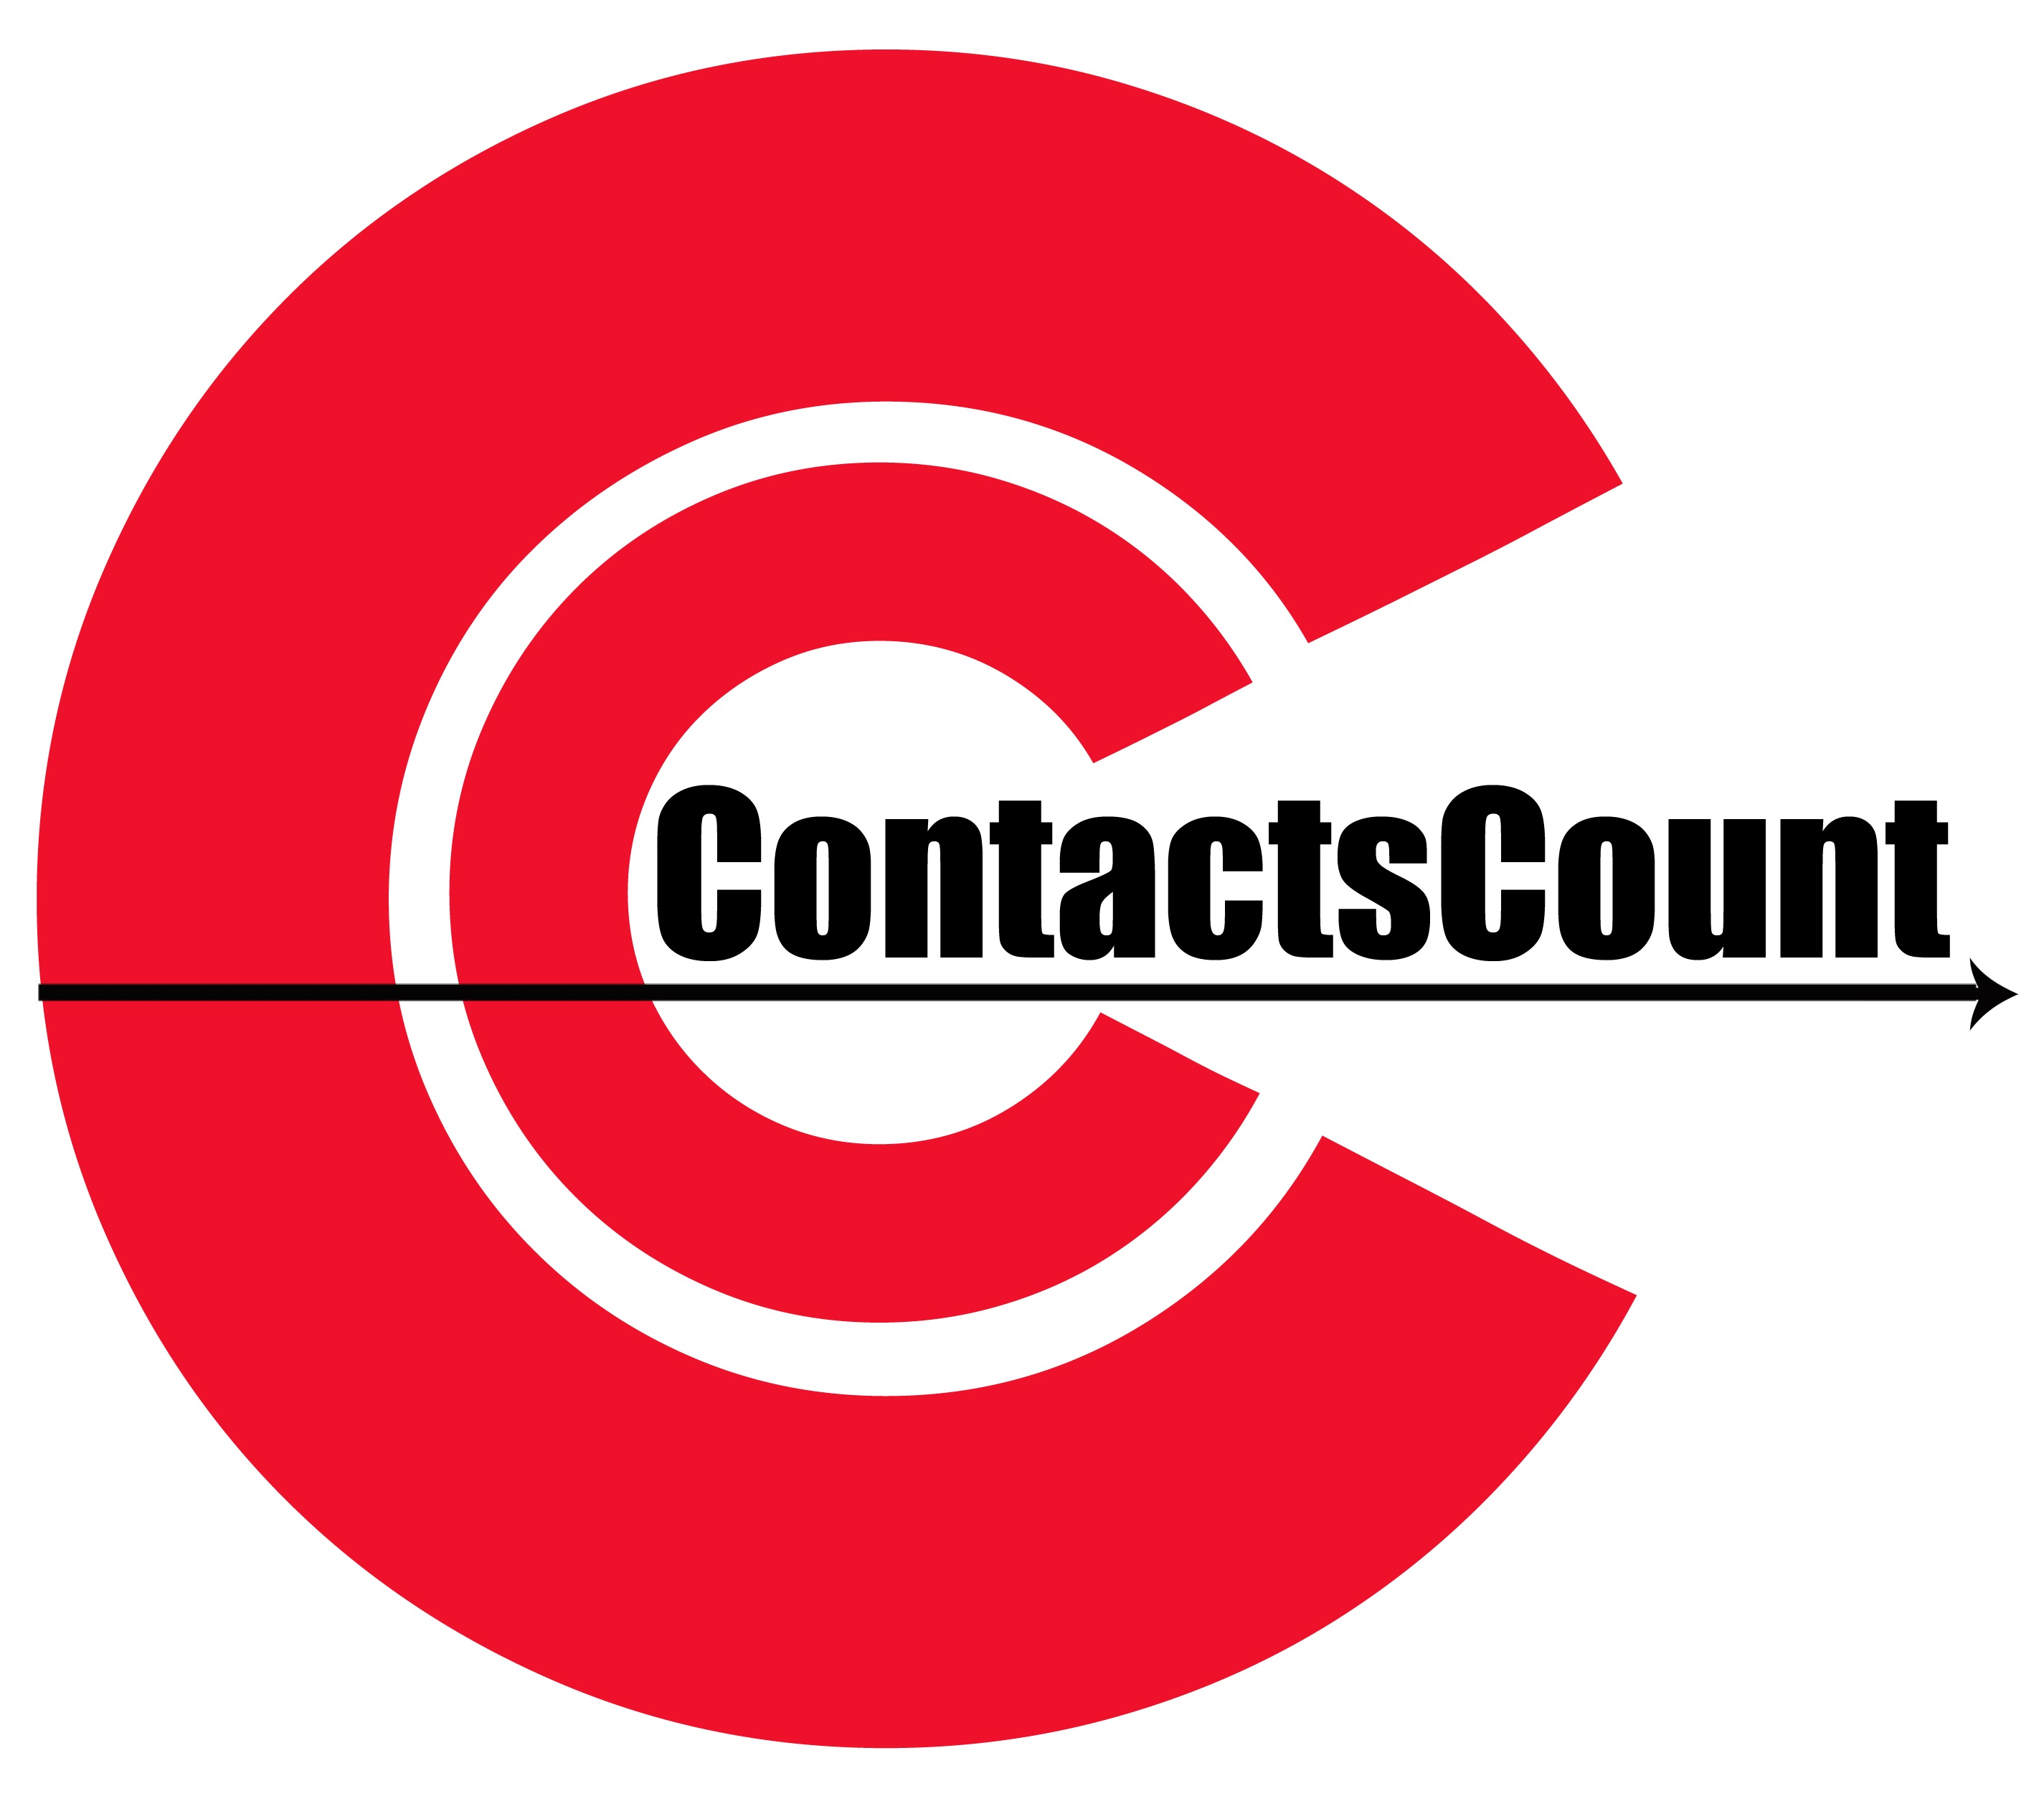 Contacts Count